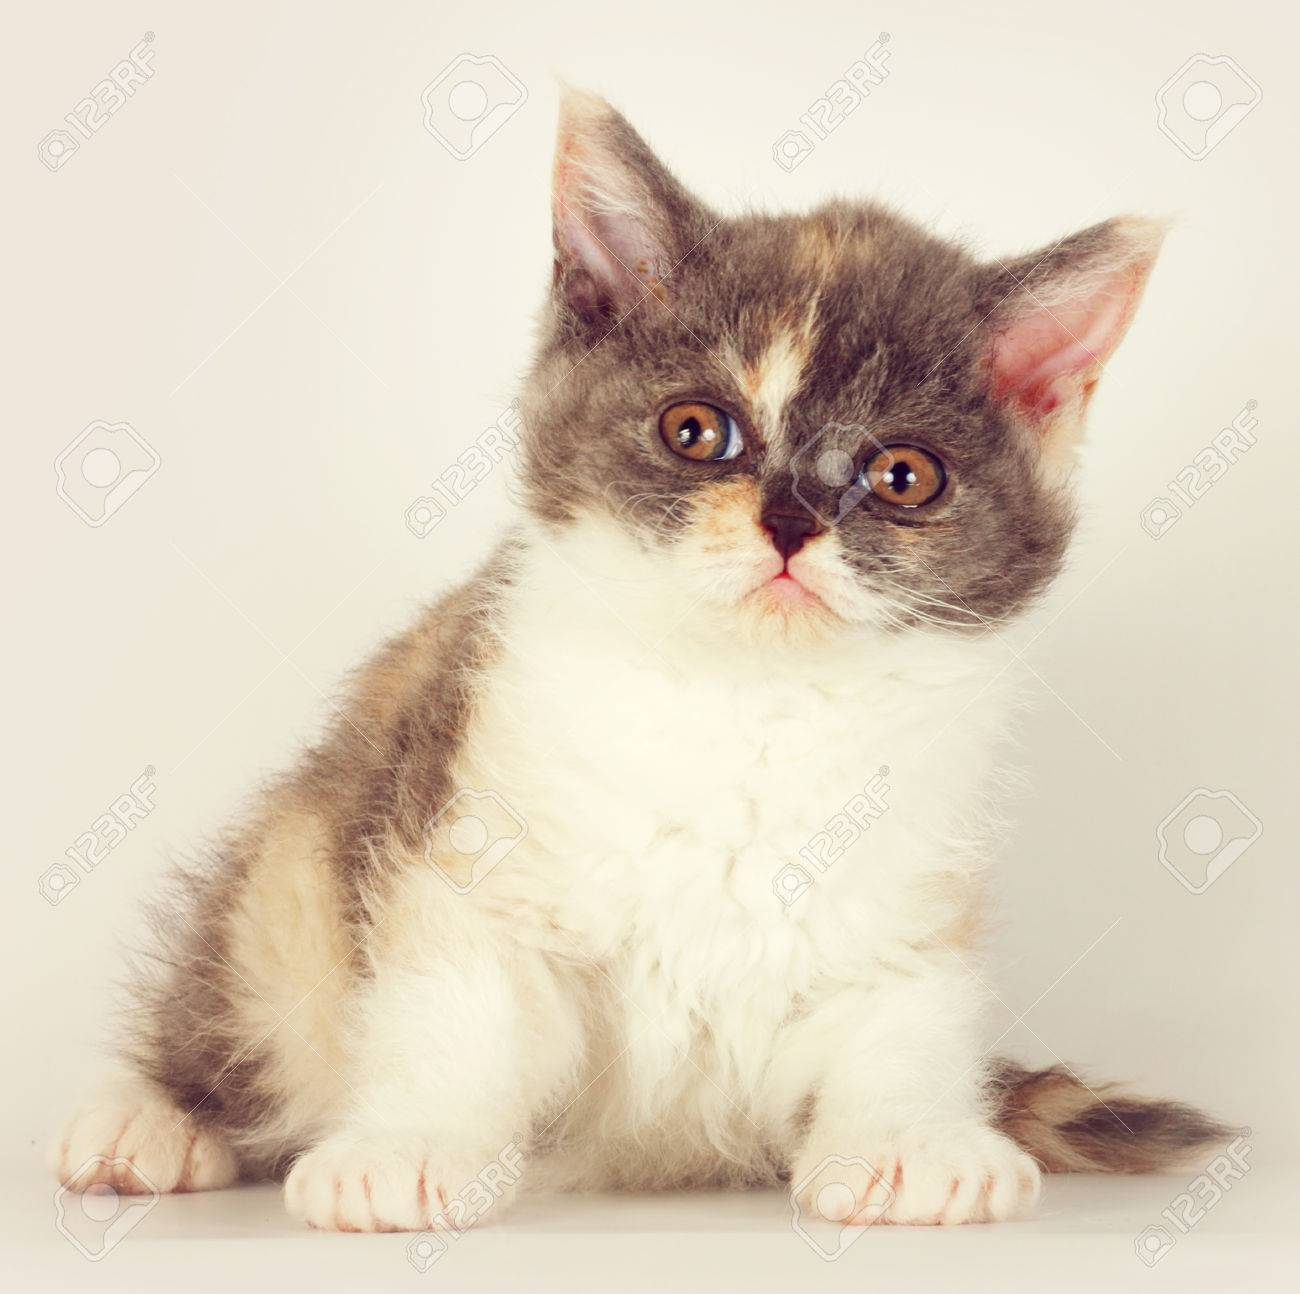 Cute Kitten Breed Selkirk Rex Cat Sitting A Light Gray